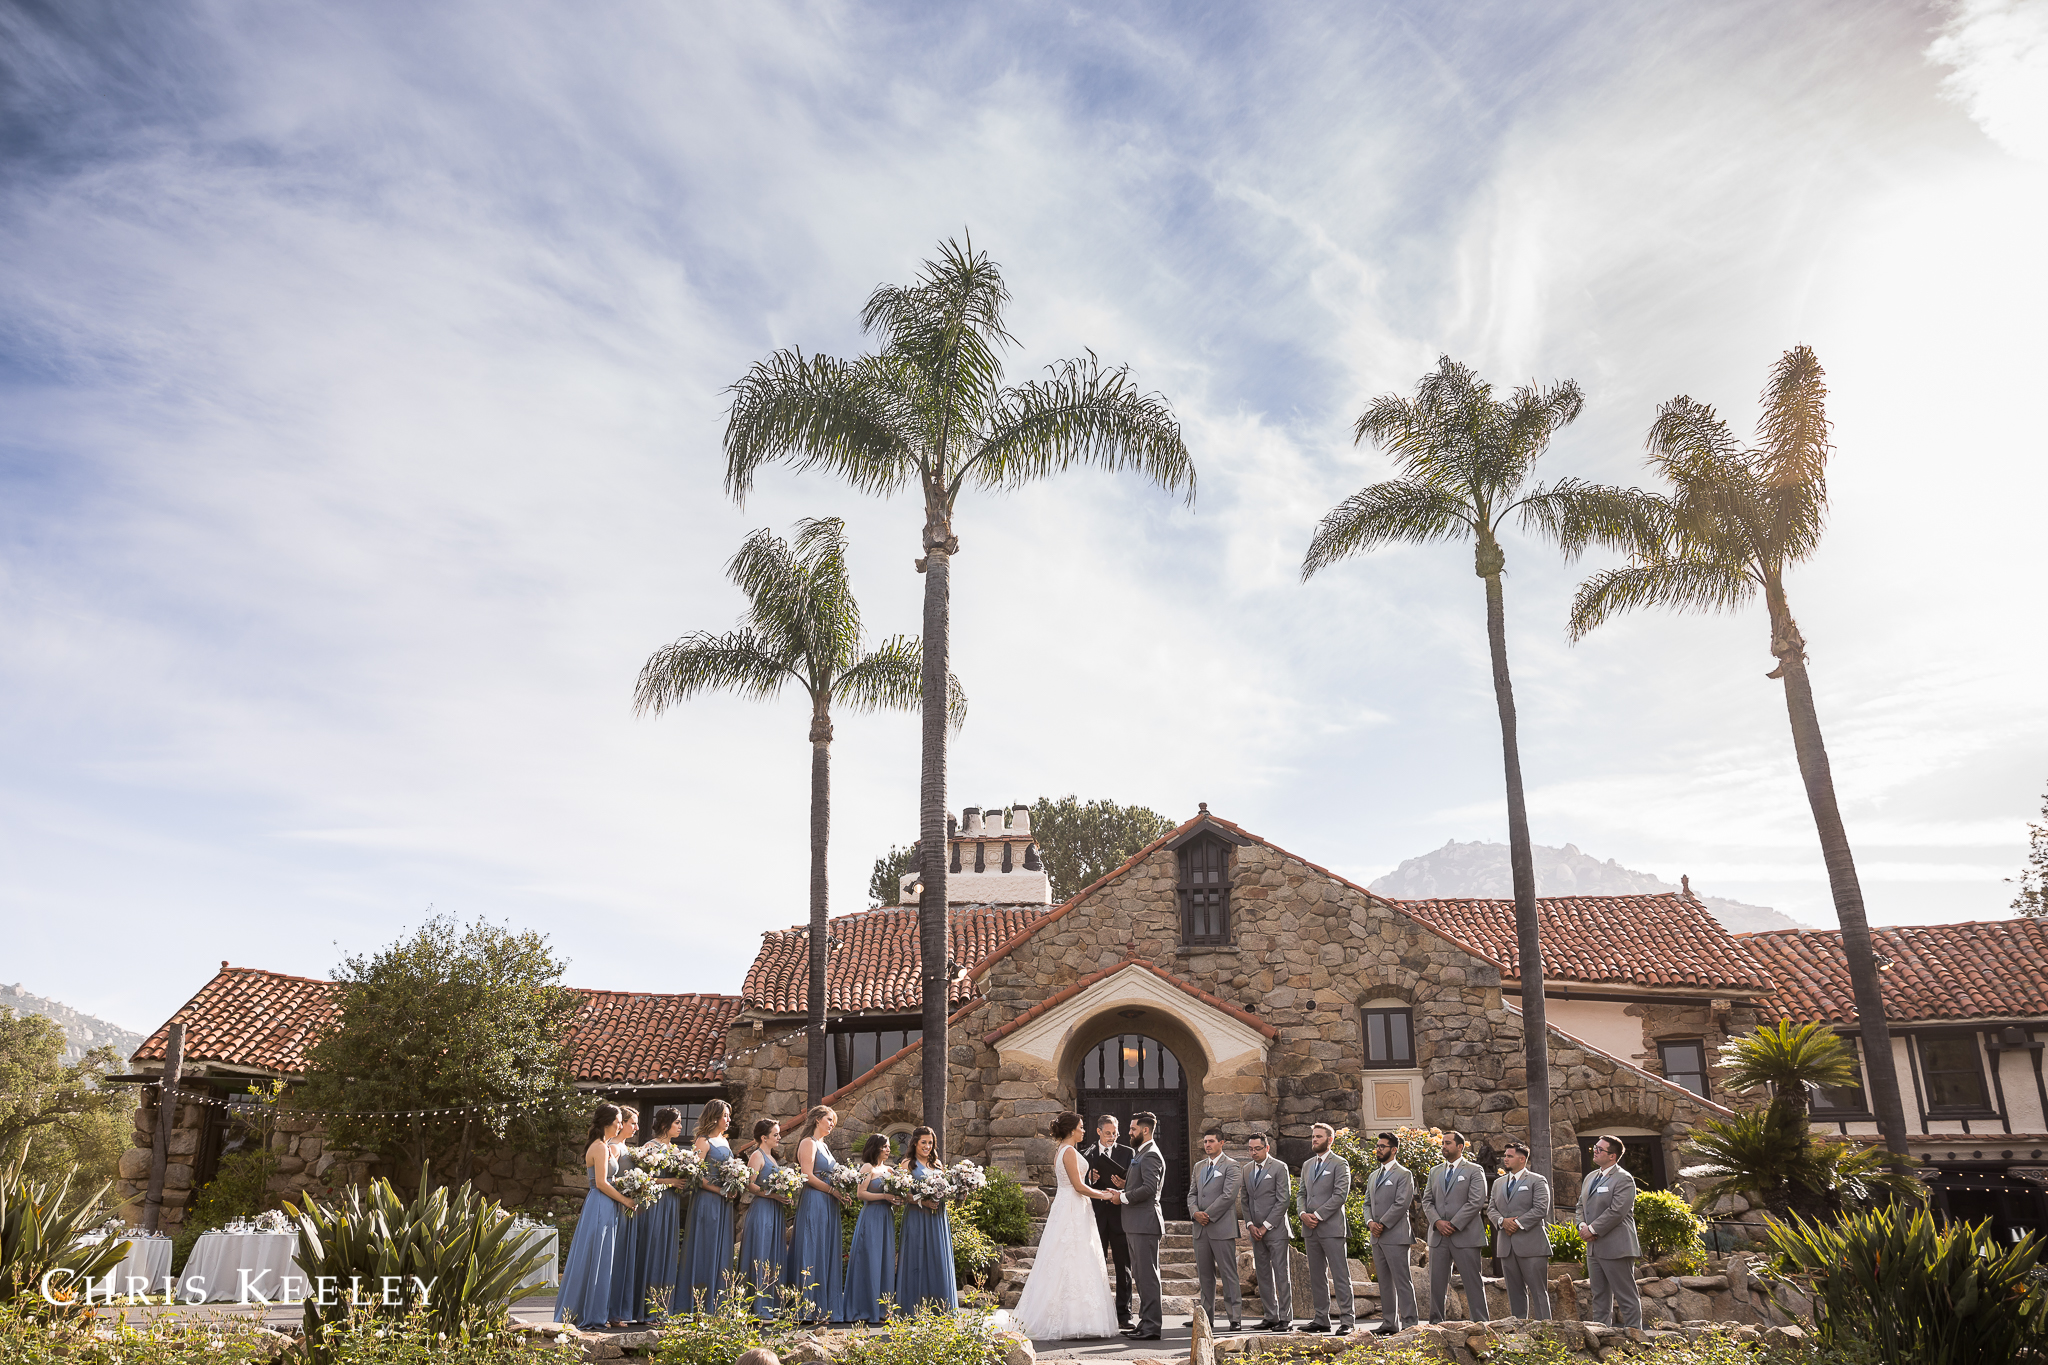 mt-woodson-castle-wedding-ceremony.jpg